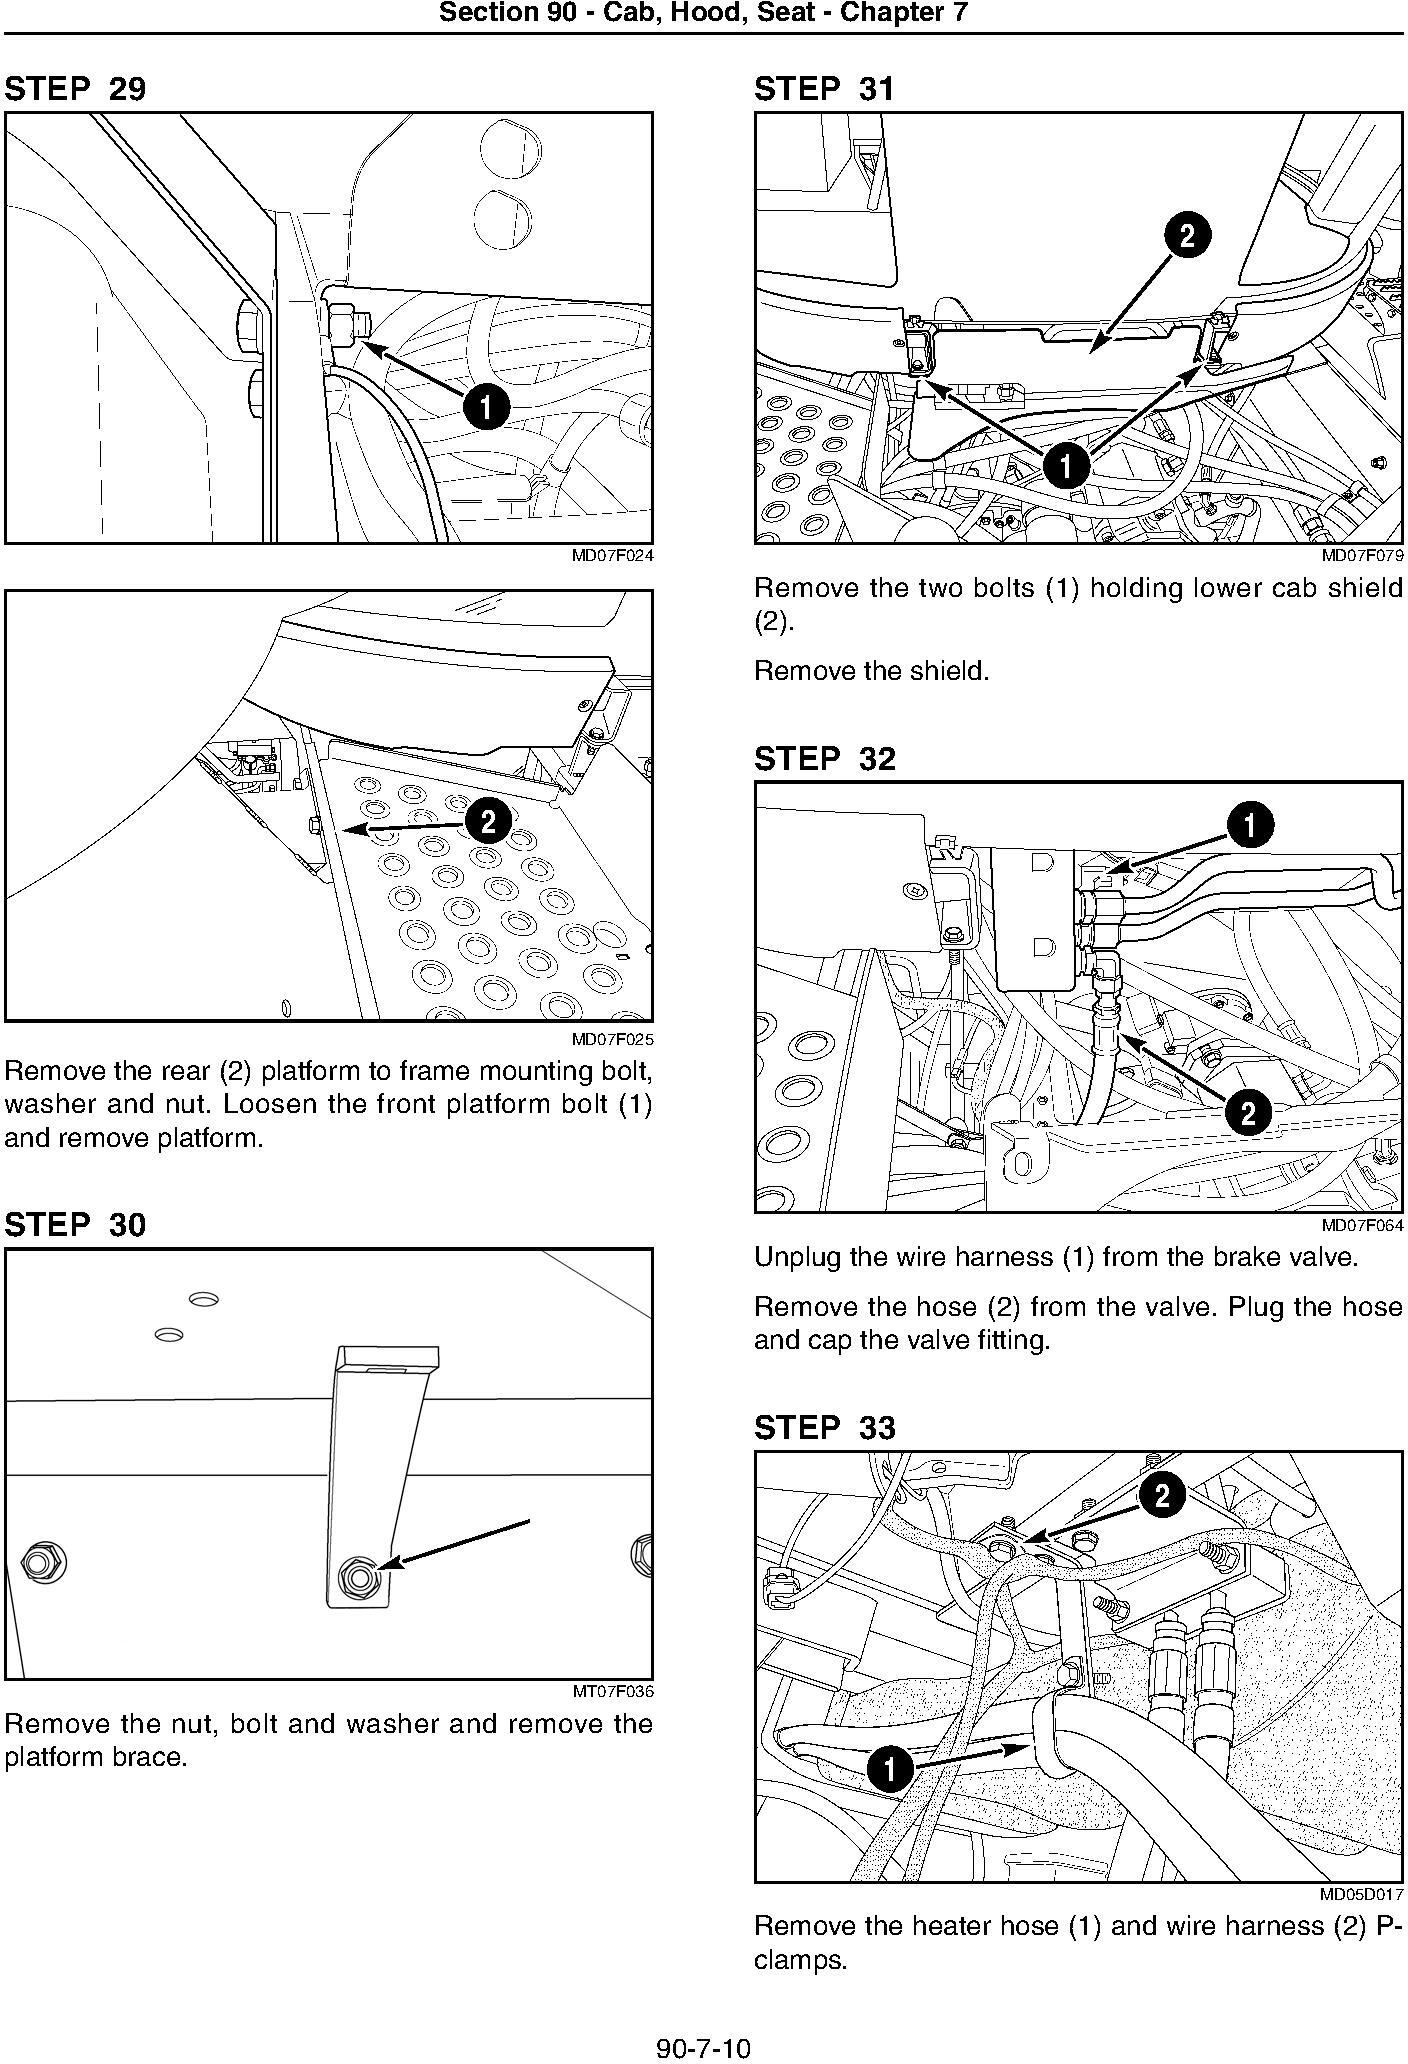 New Holland T9010,T9020, T9030,T9040, T9050, T9060, TJ280/330/380/430/480/530 Tractor Service Manual - 1